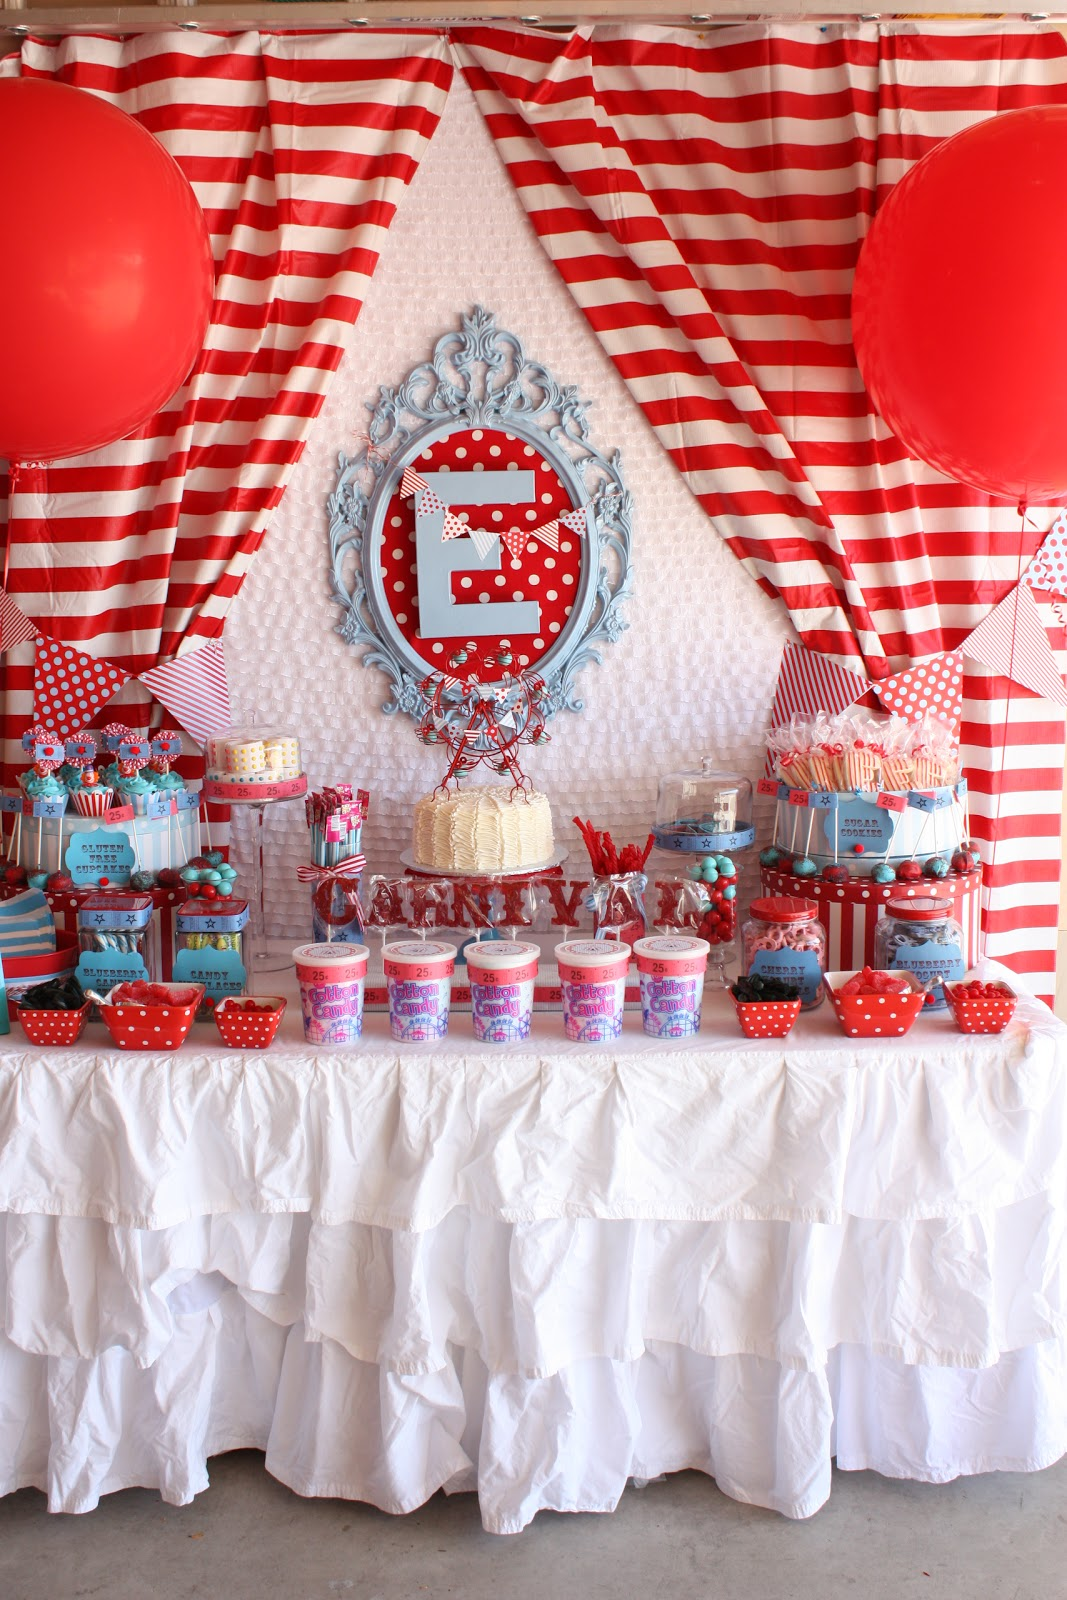 Diy Backdrop Stand For Dessert Table Buckets Of Grace Carnival Party Part Iii Carnival Sweets